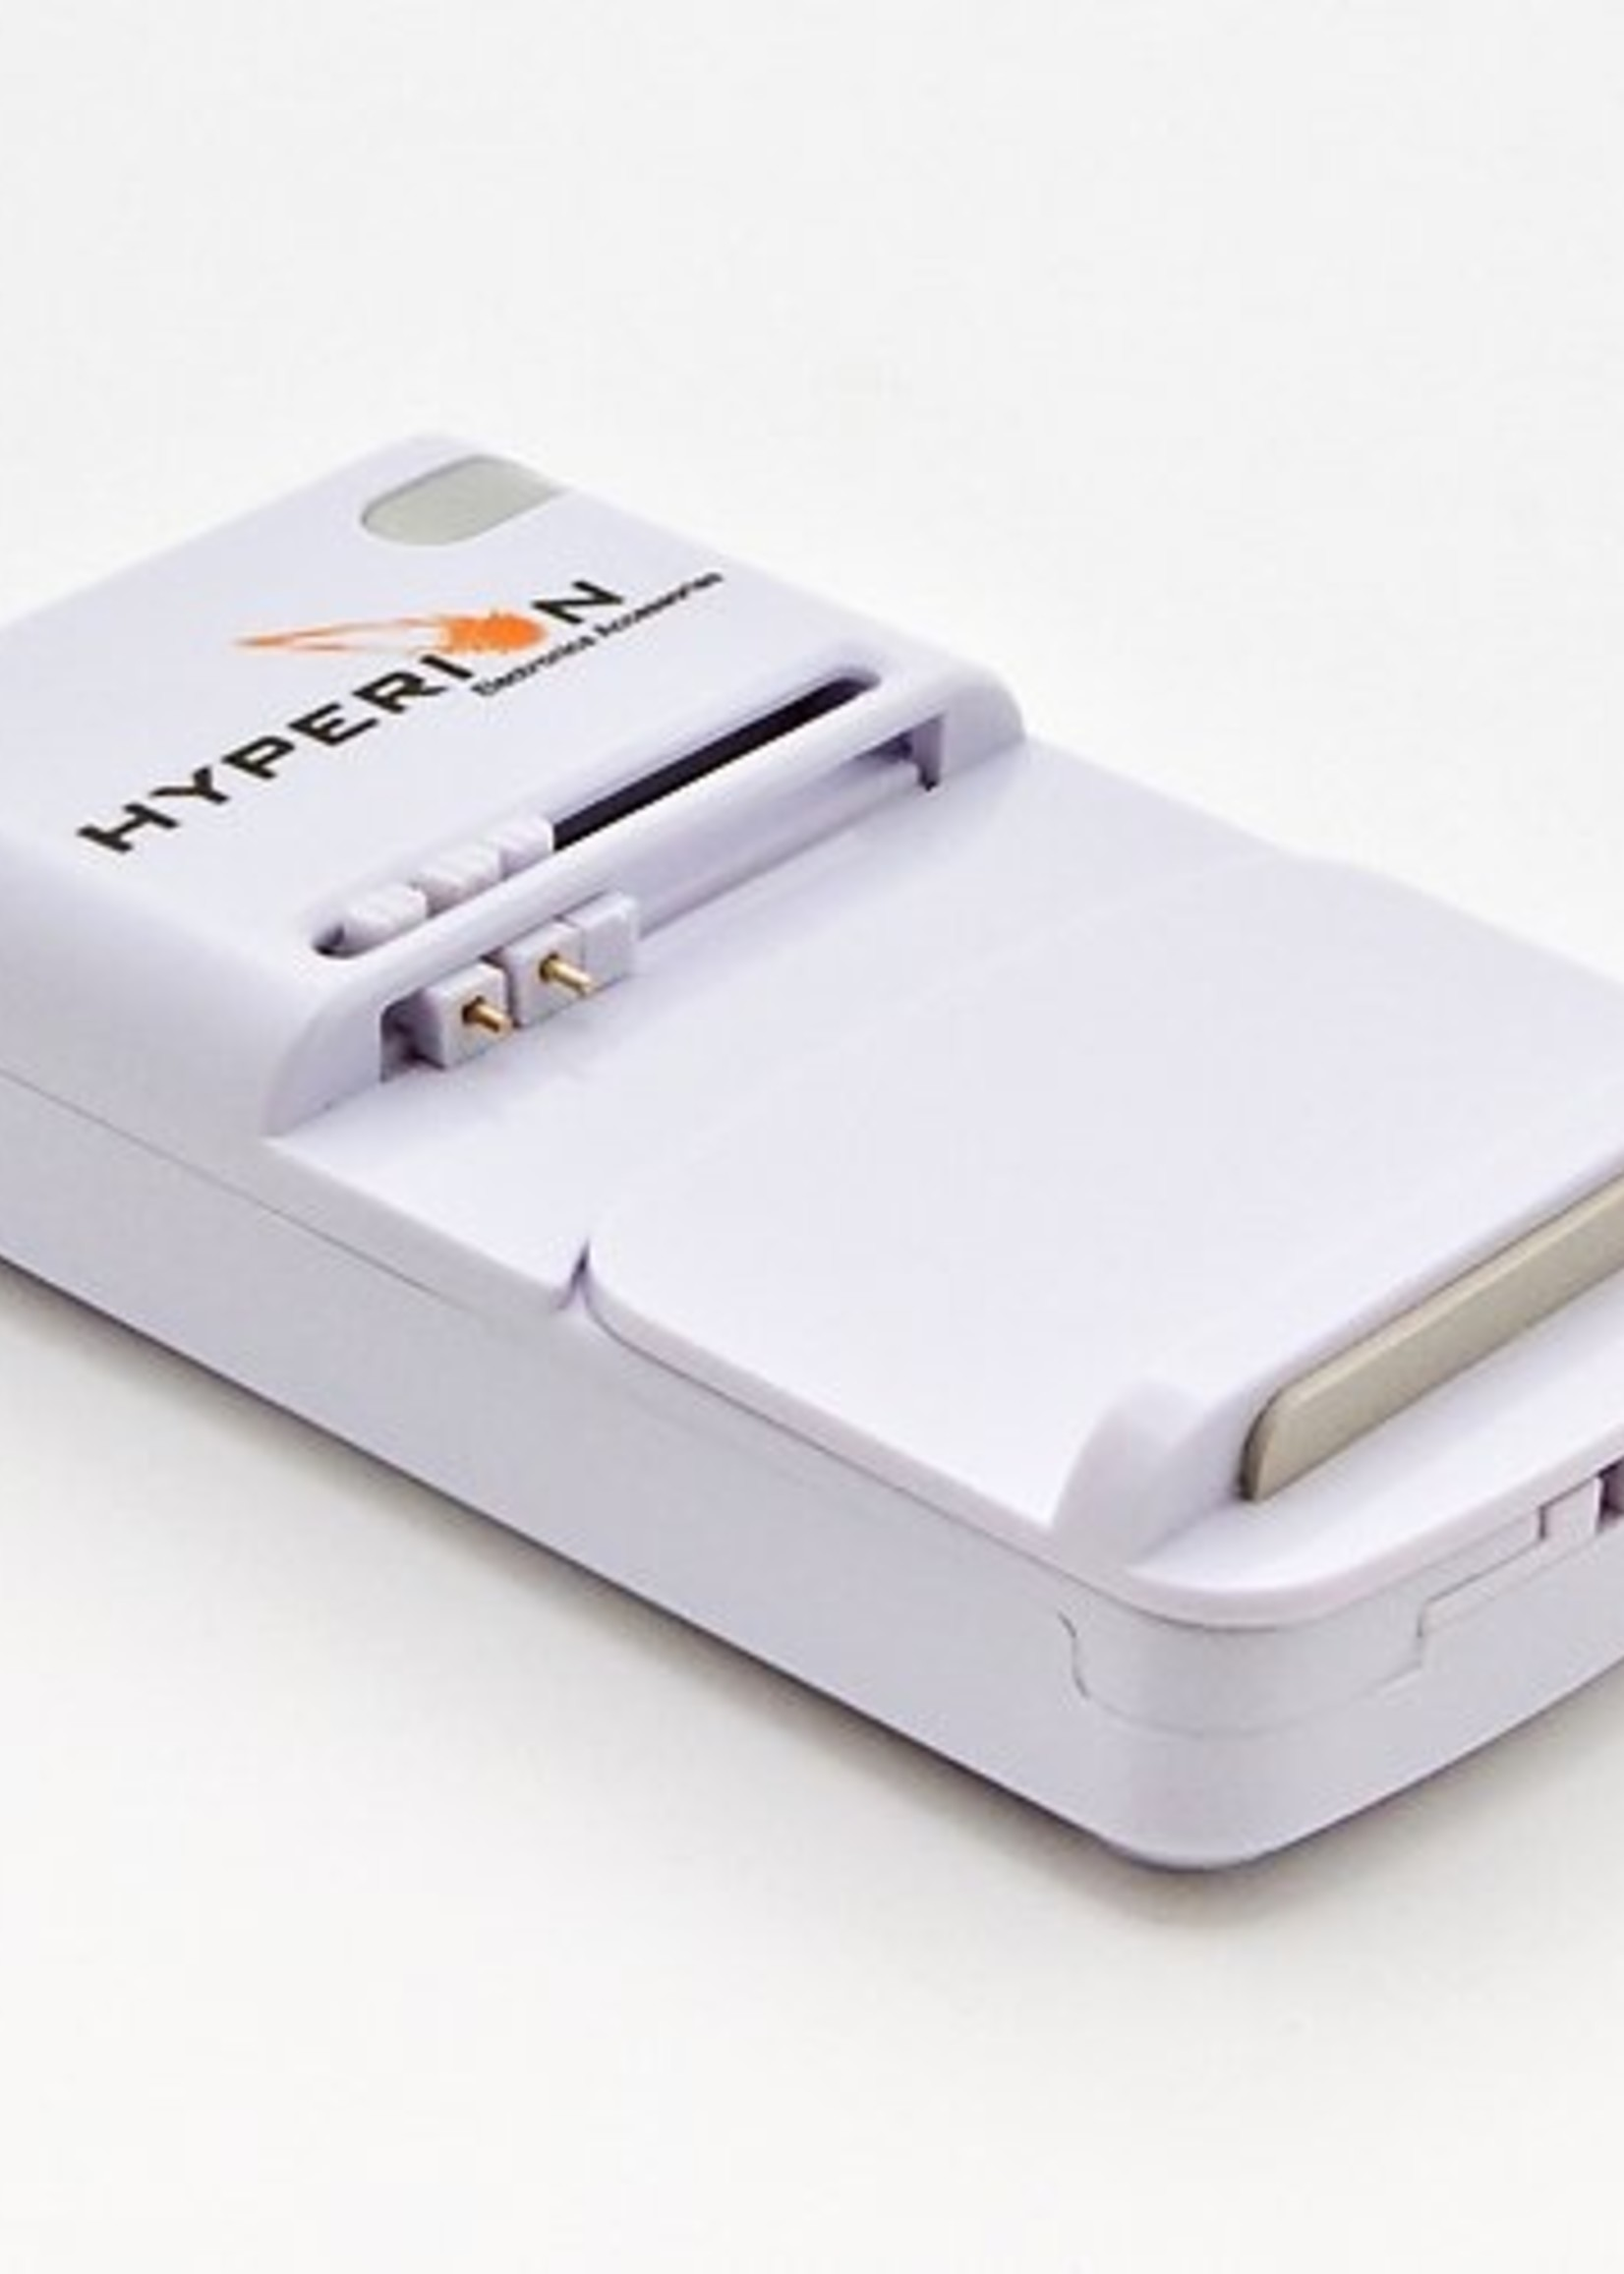 MAX 5 Universal Battery Charger